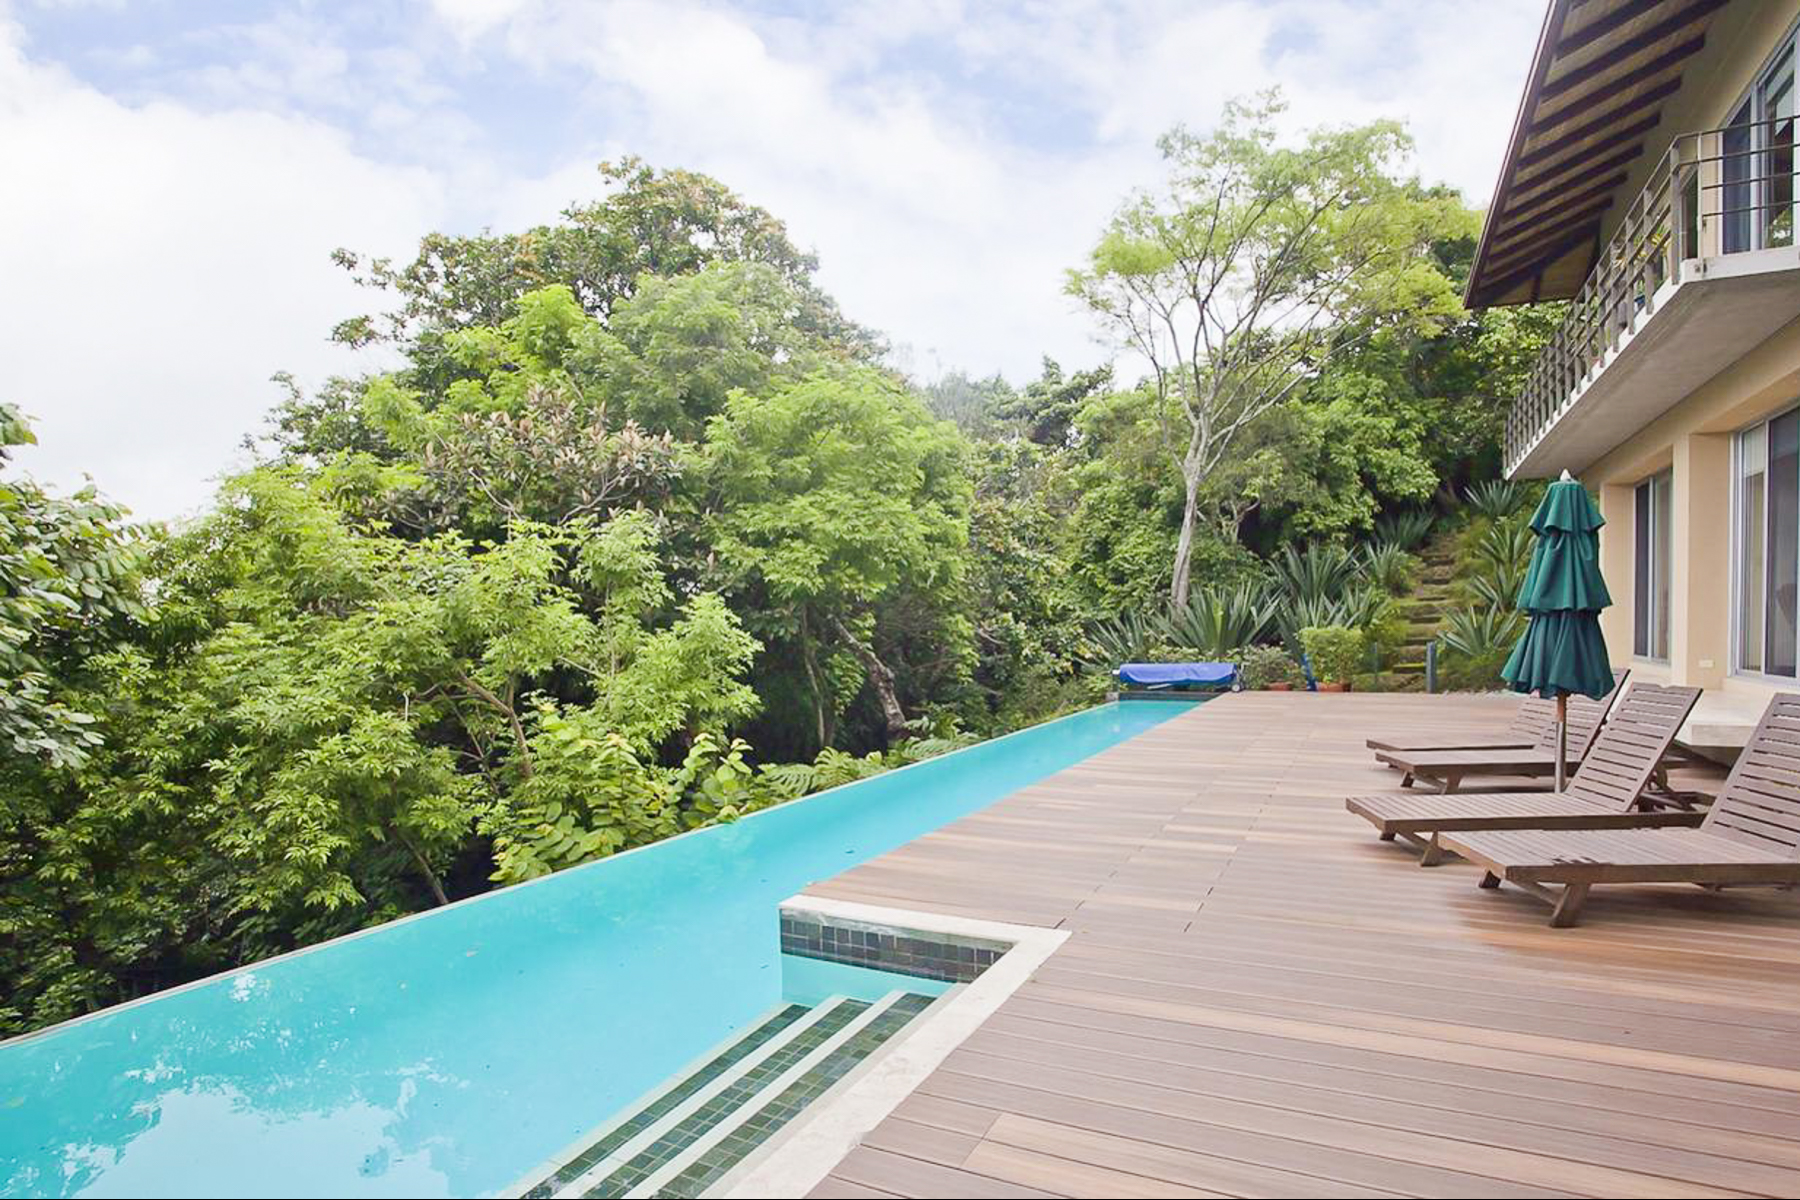 Single Family Homes for Sale at Balinese Sanctuary, Villa Real Santa Ana, San Jose Costa Rica